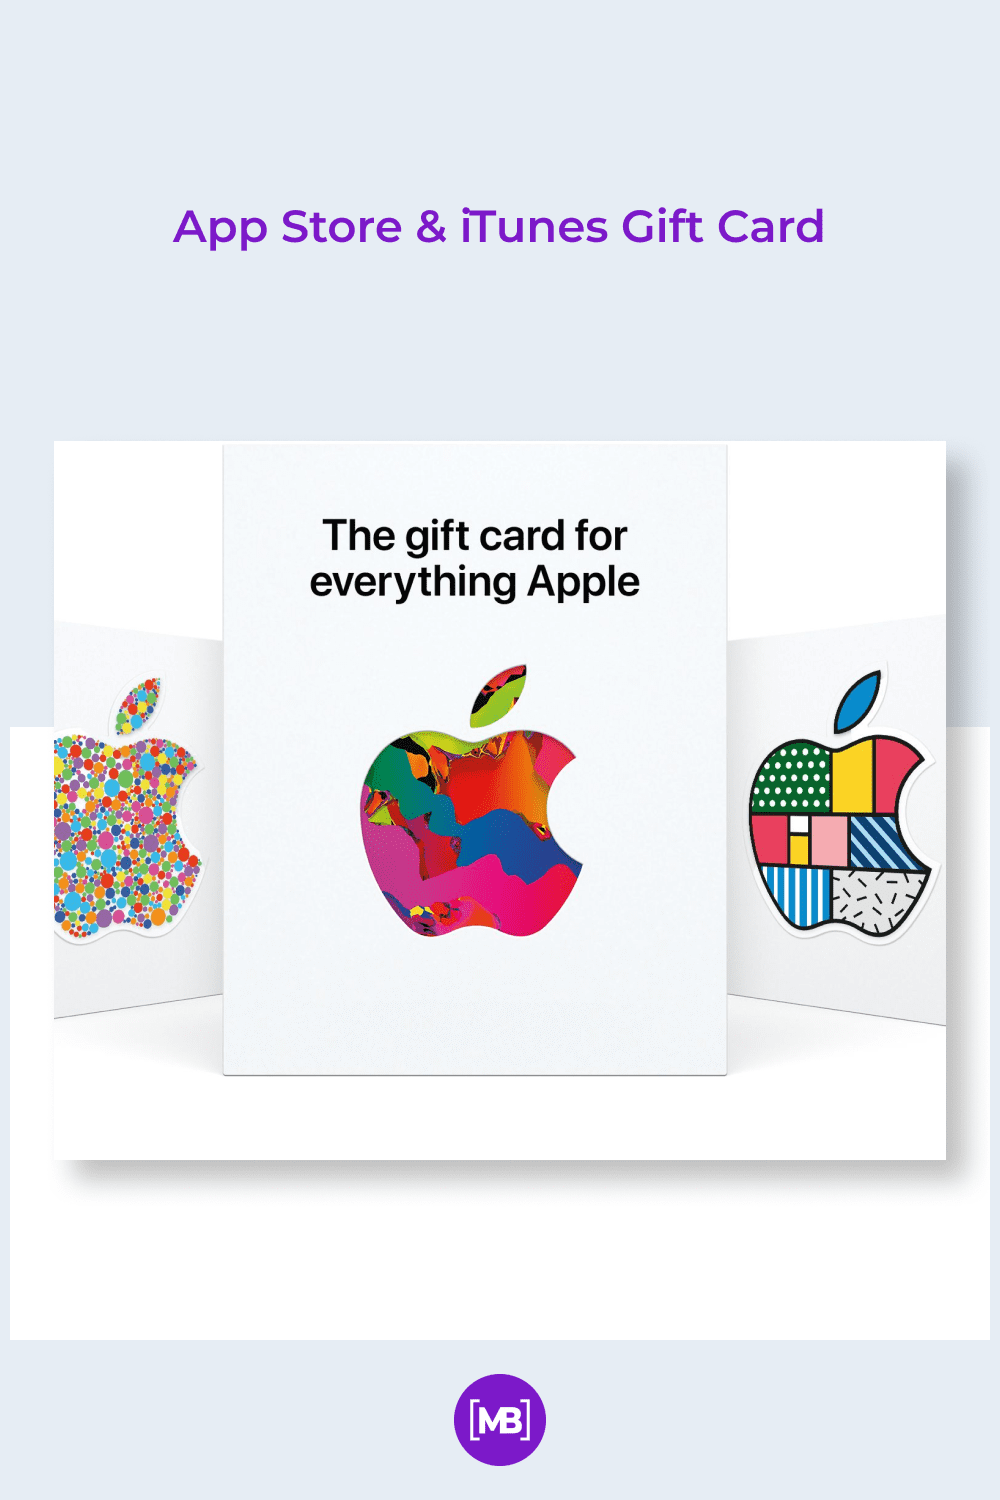 The Apple gift card looks no worse than the company's products.